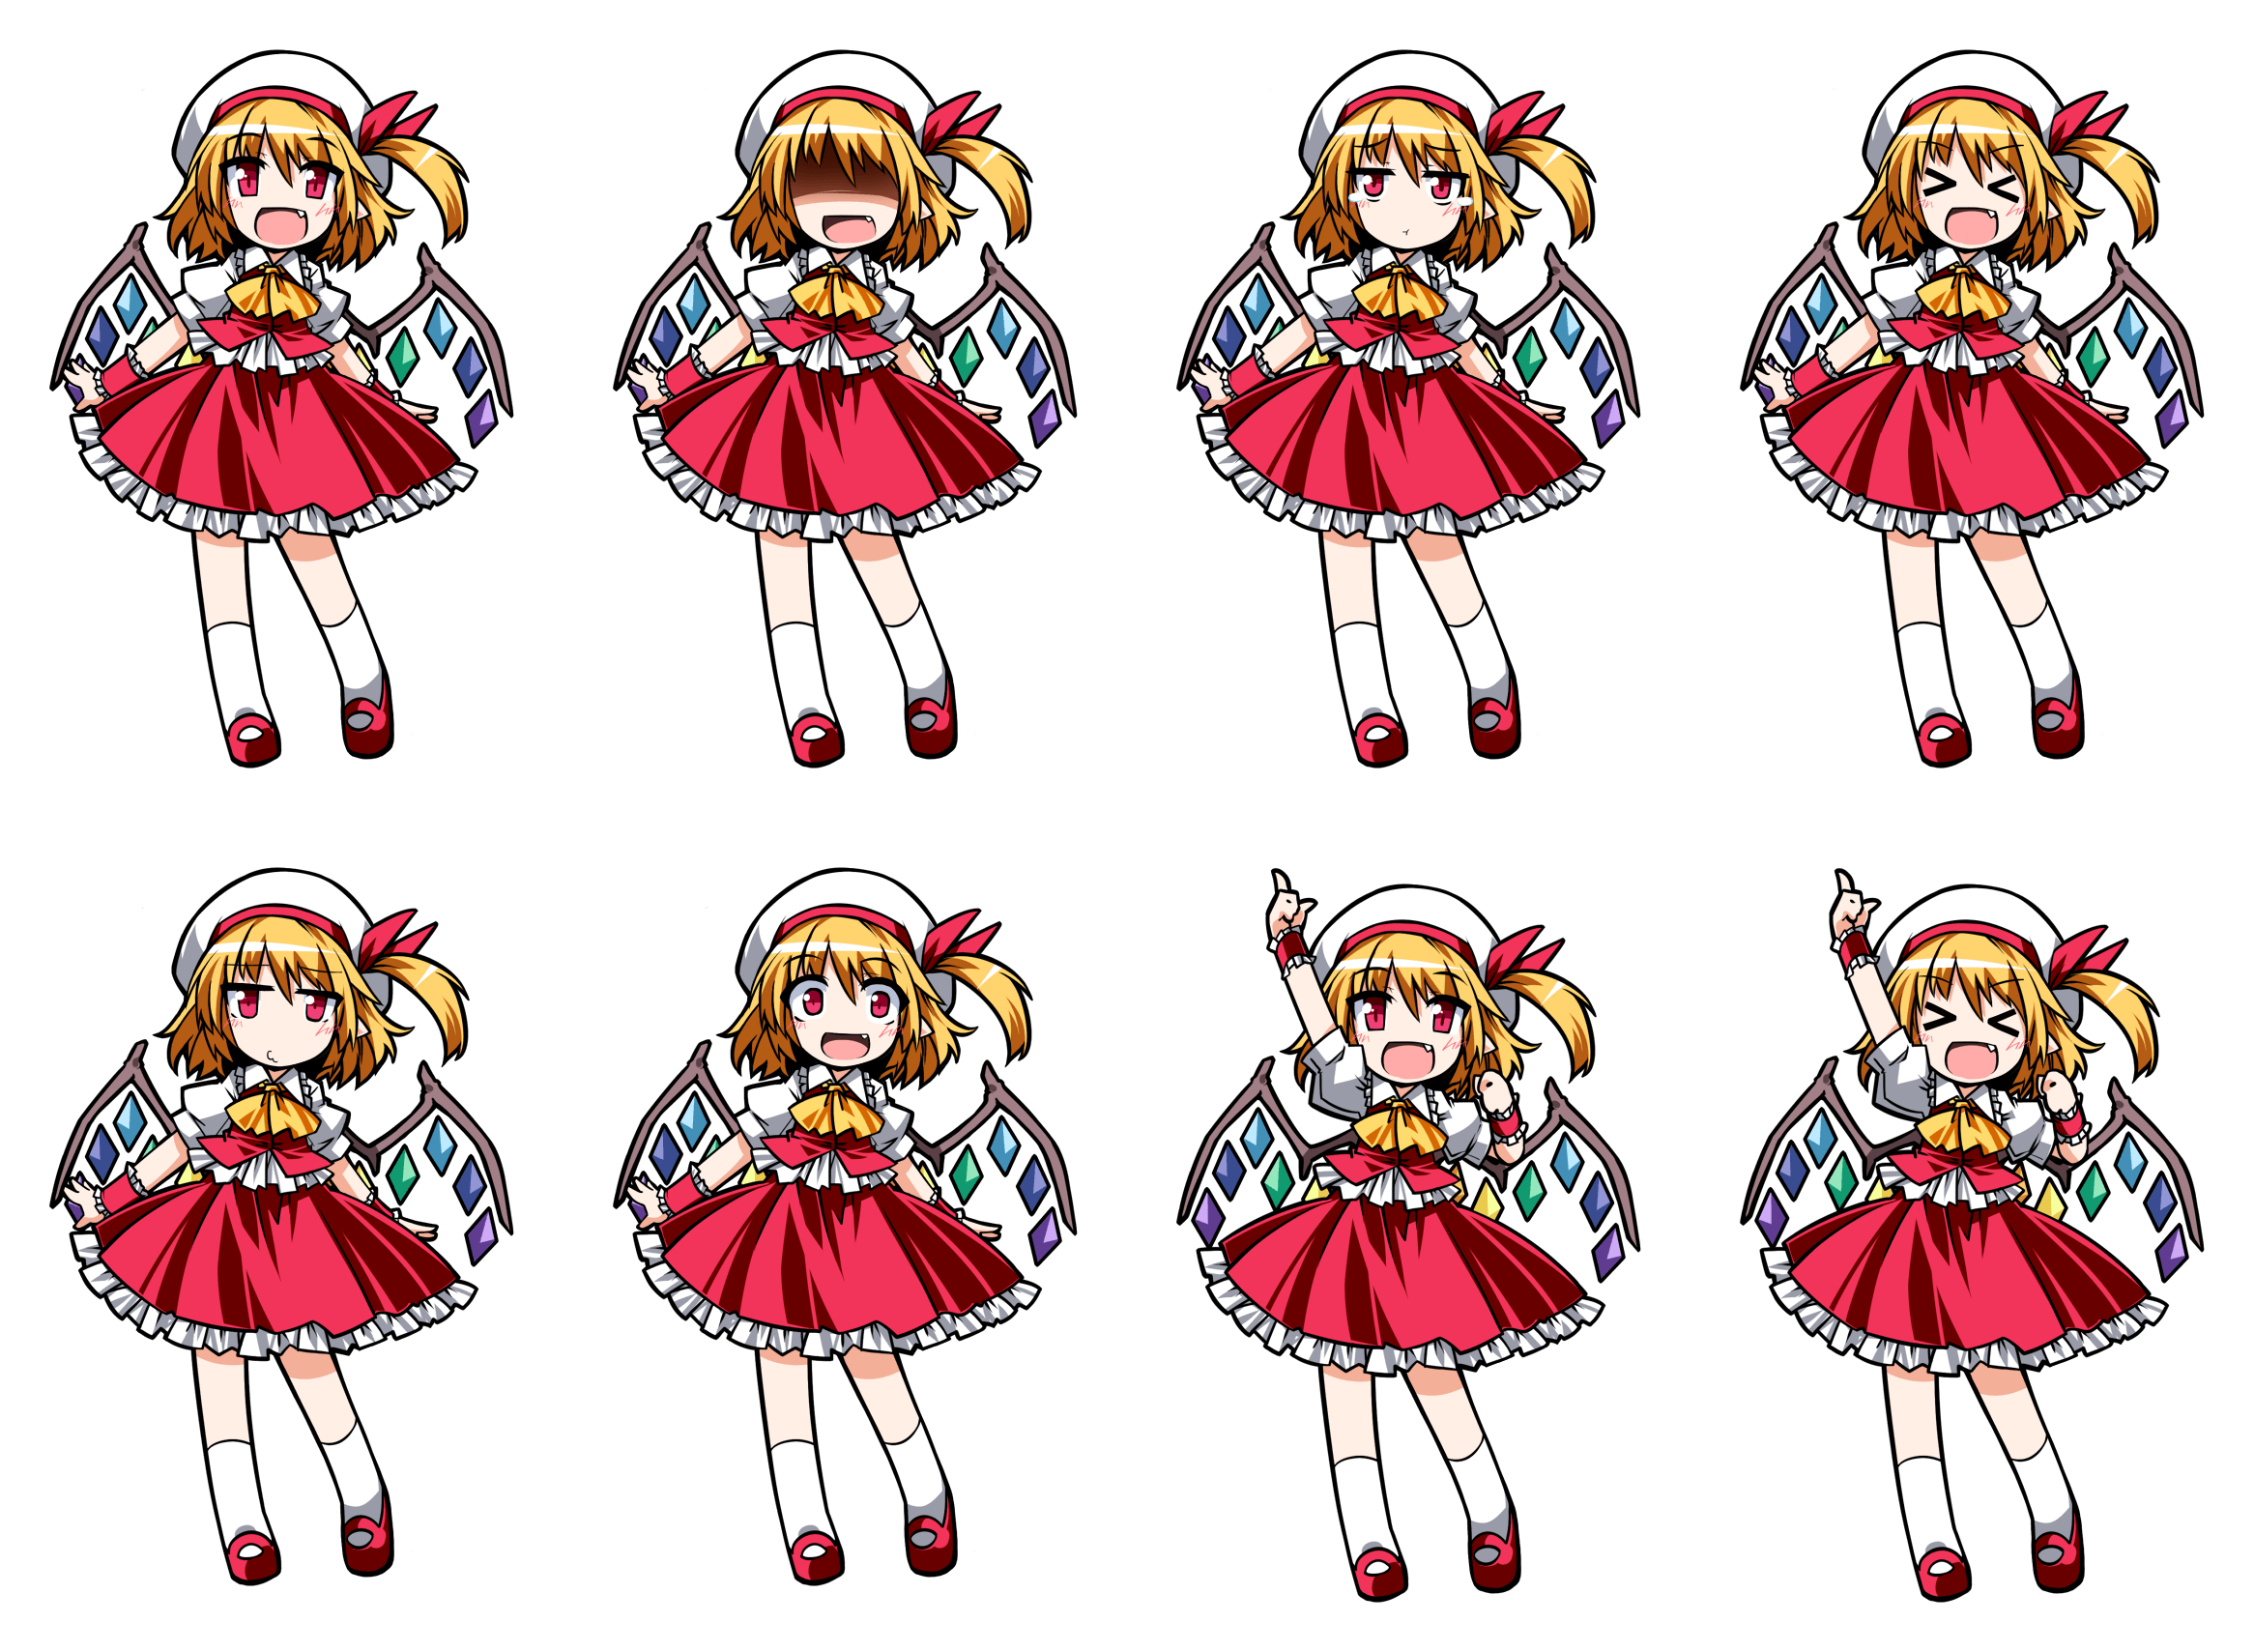 Dance clipart dance performance. Pc computer touhou puppet